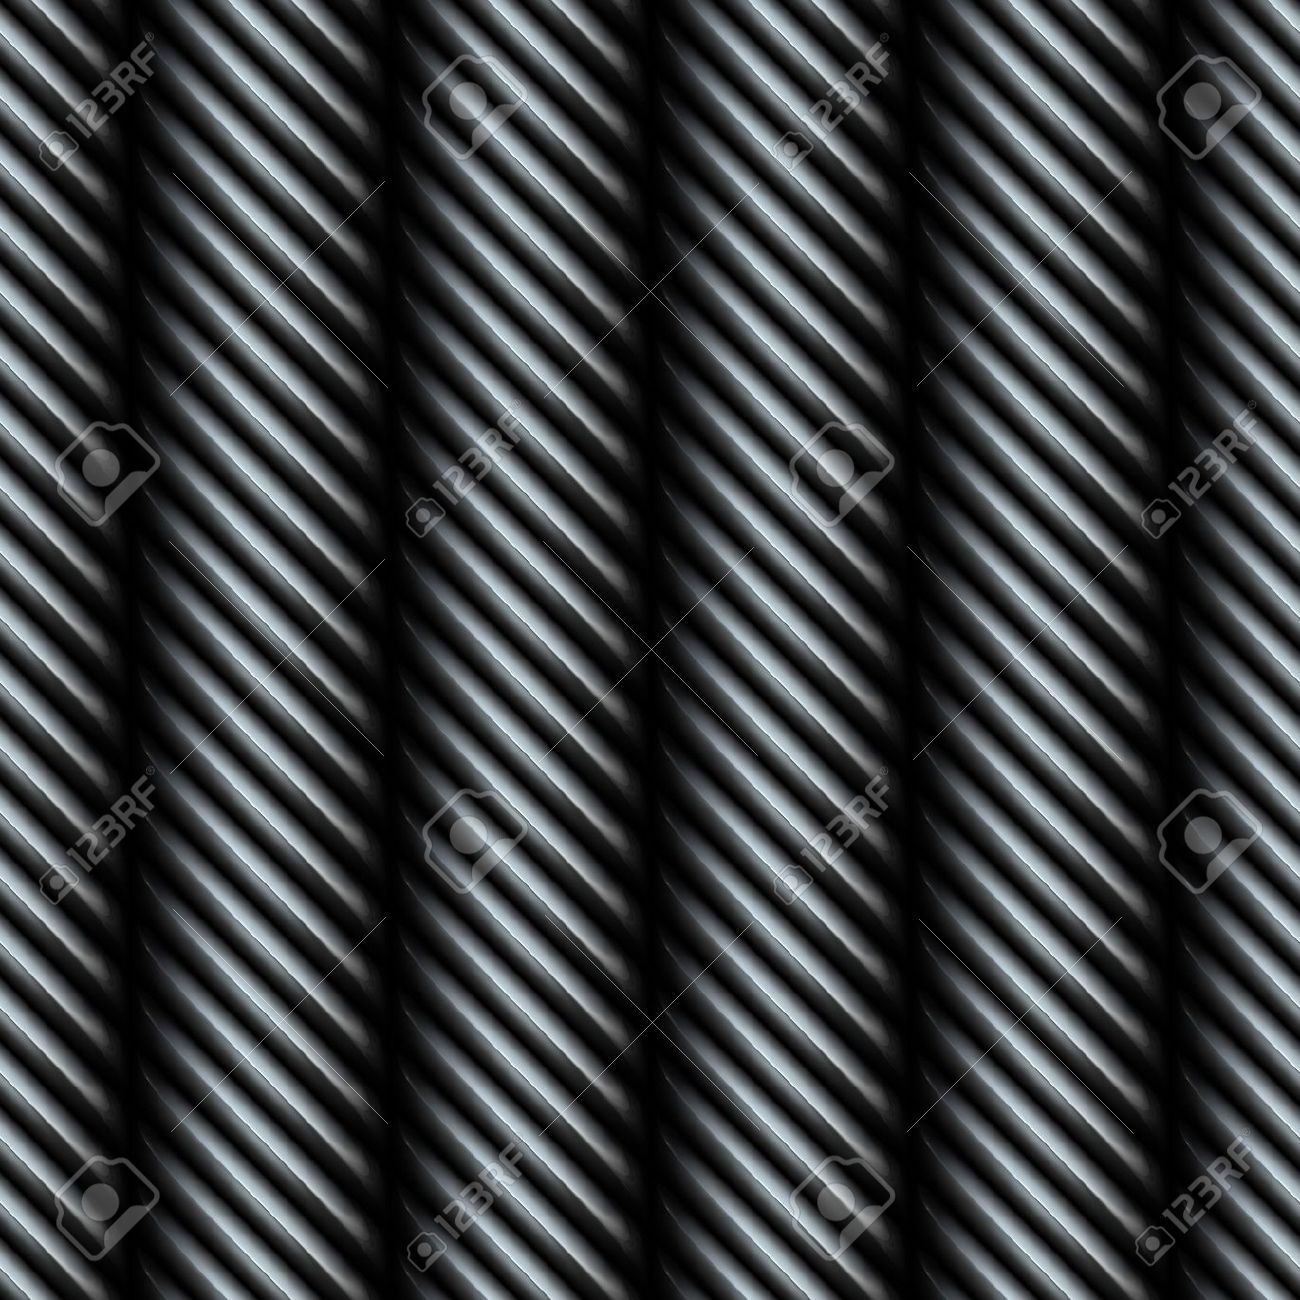 A 3D steel metallic silver wire texture that tiles seamlessly as a pattern. Stock Photo - 6157434